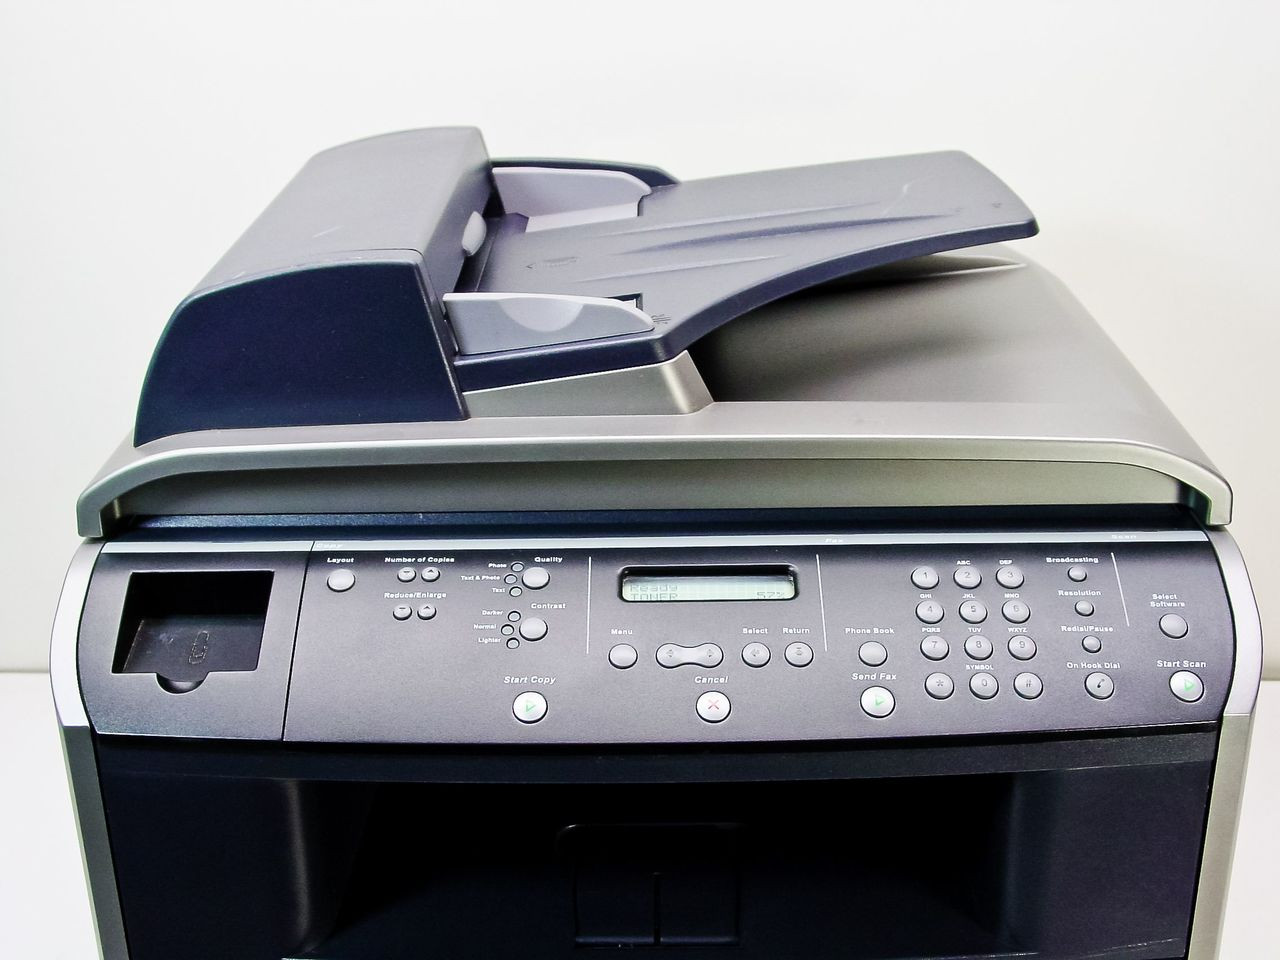 Dell MFP 1600n All-In-One Laser Printer | RecycledGoods.com